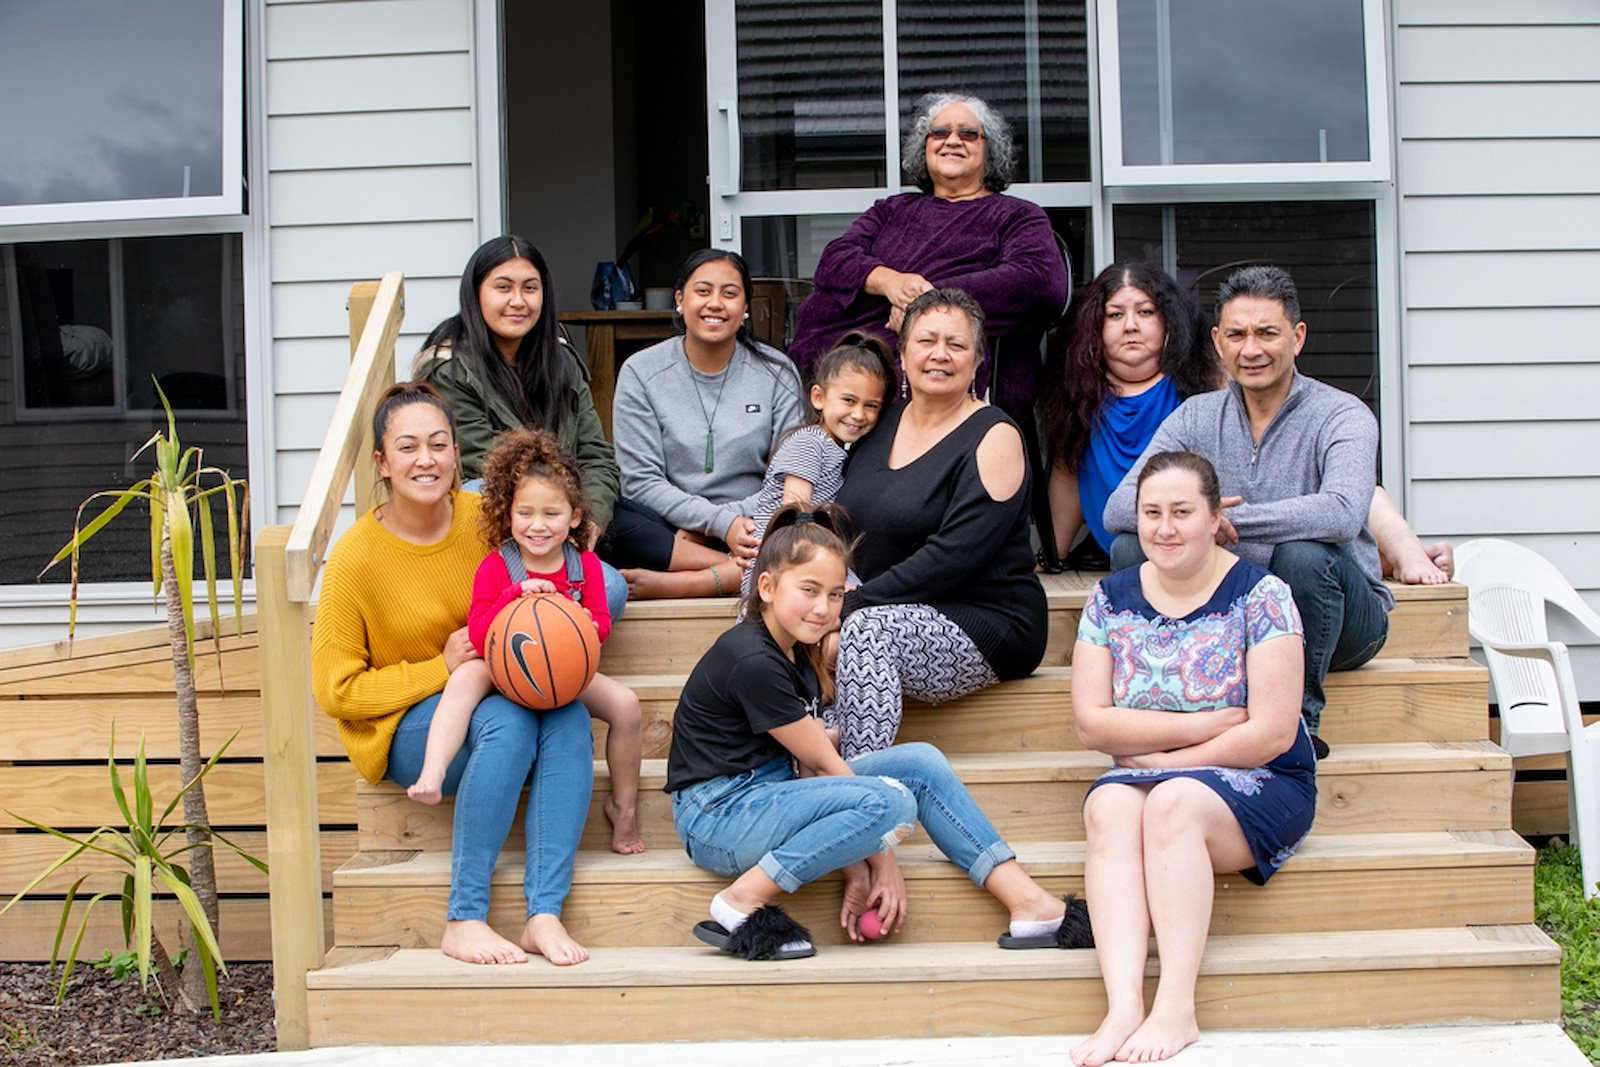 The Tawhai whānau in front of their new whare. Photo credit: Josie McClutchie.